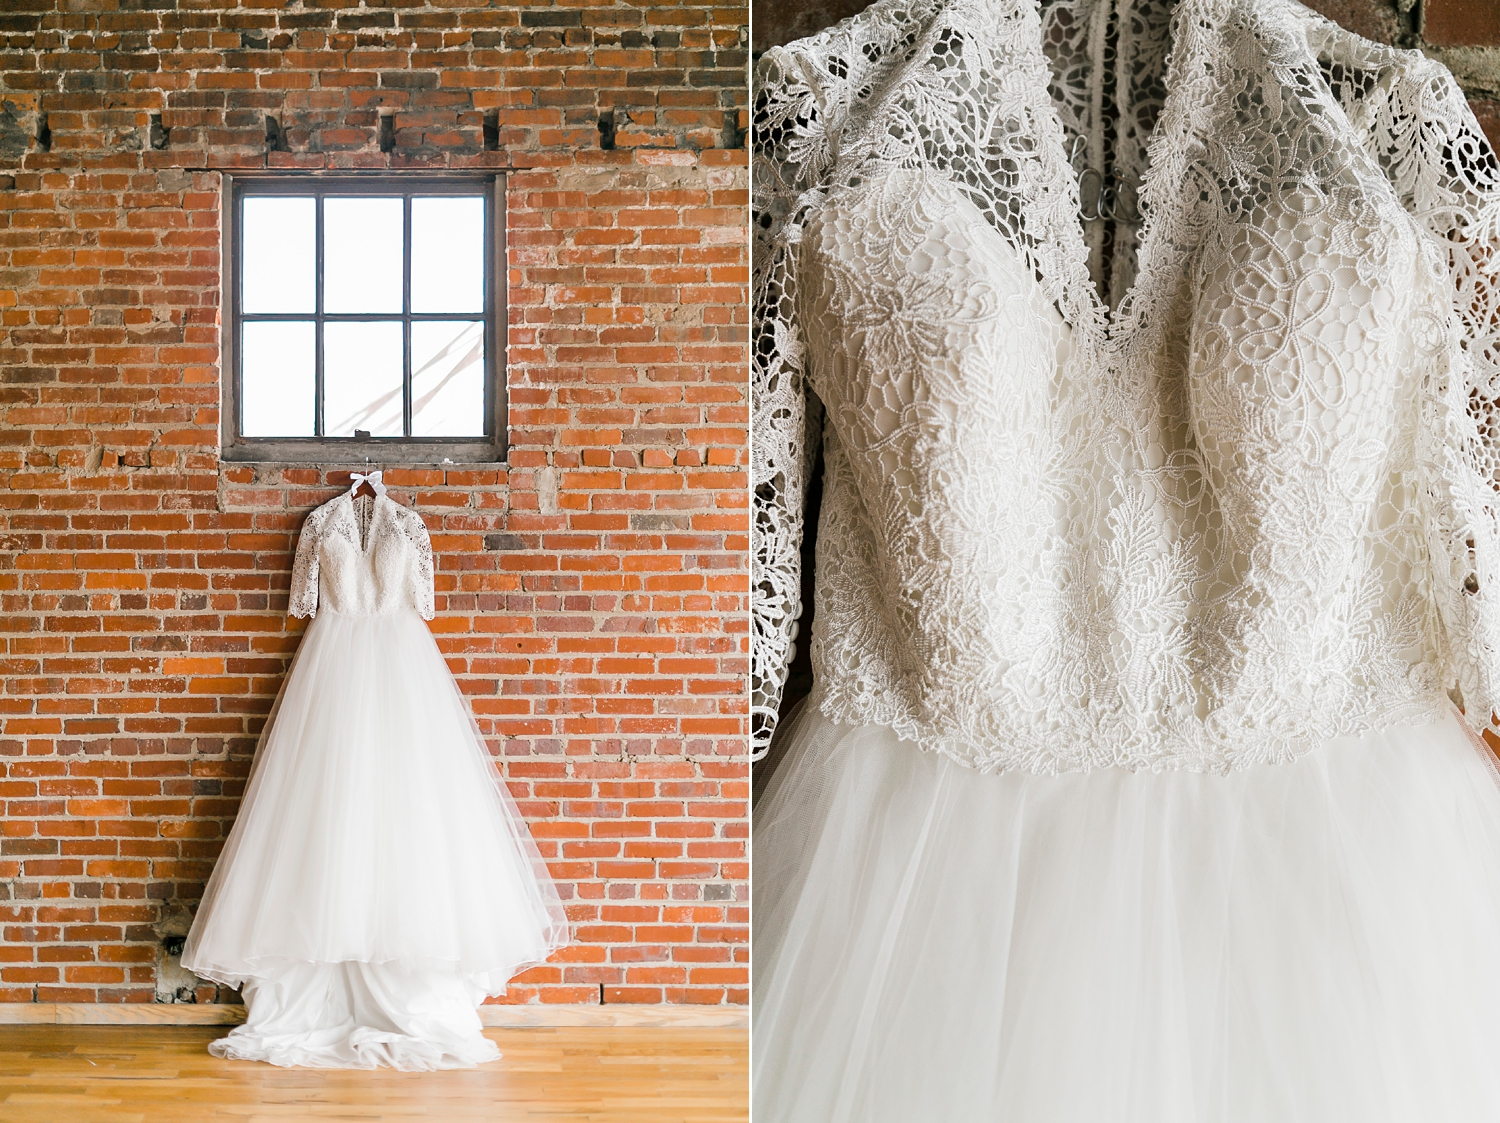 Classic ballgown dress with royal wedding vibes hung under window at the standard knoxville with exposed brick